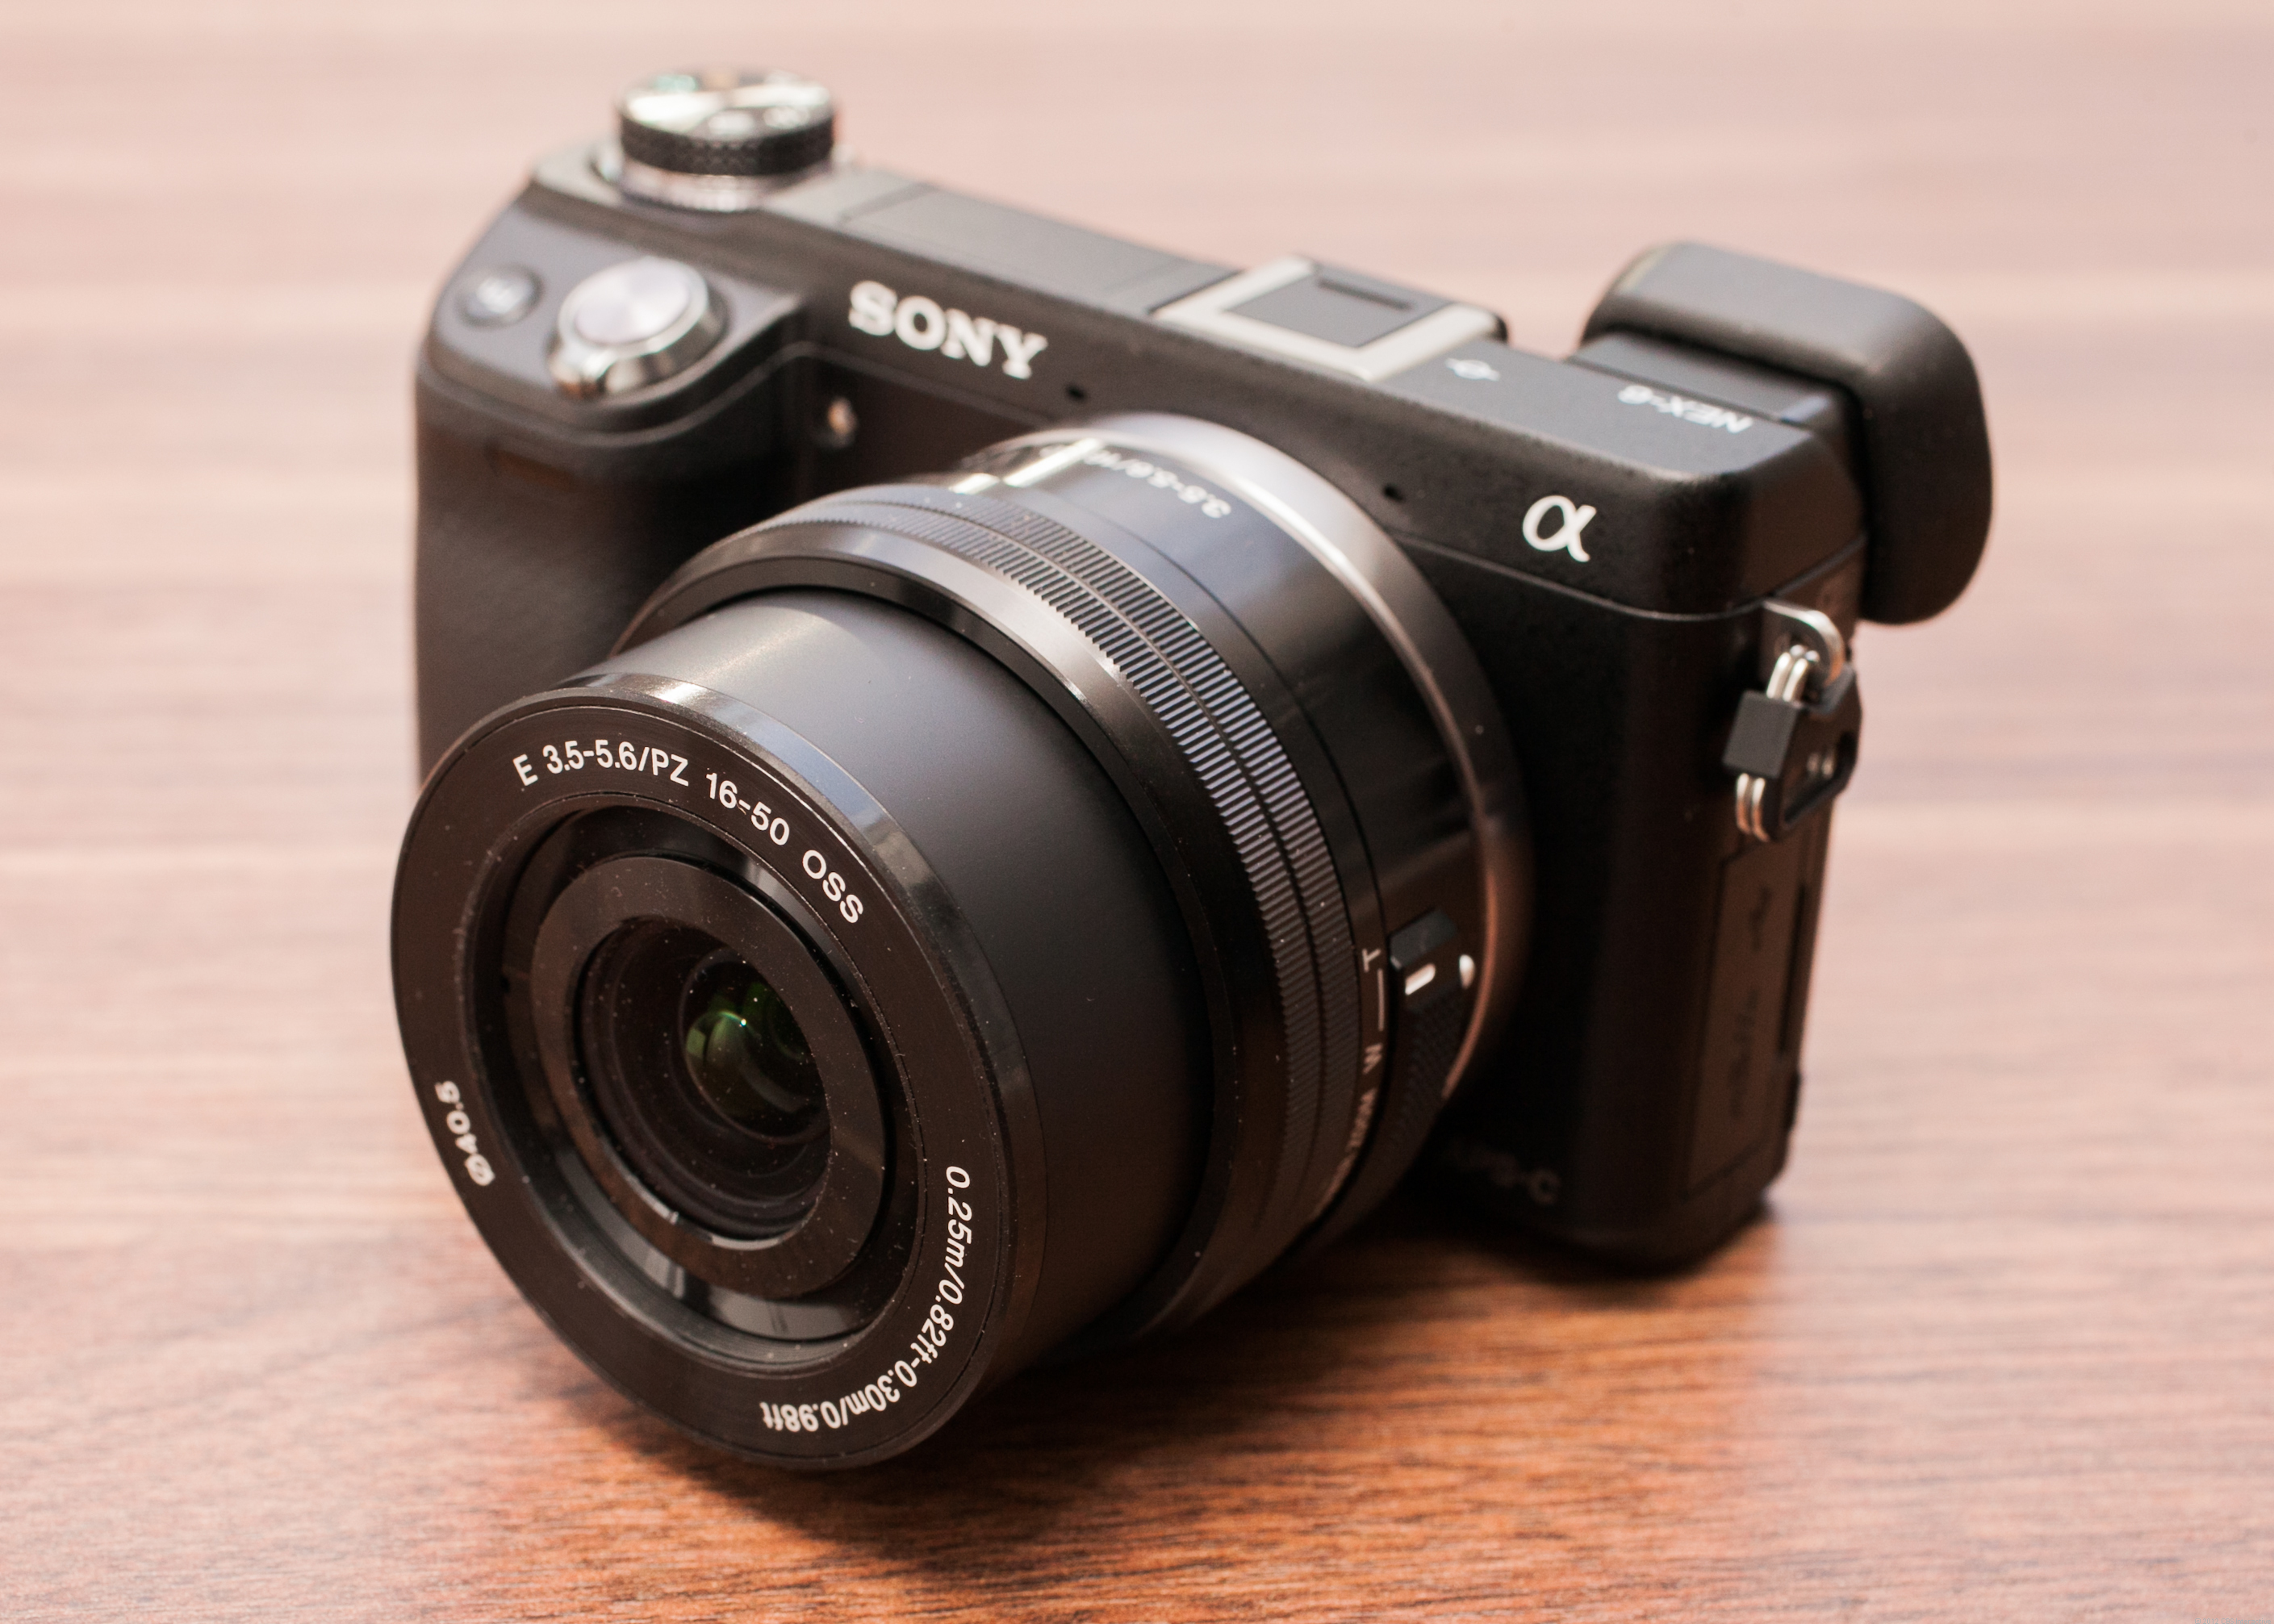 Sony Alpha NEX-6 (with 16-50mm PZ lens)